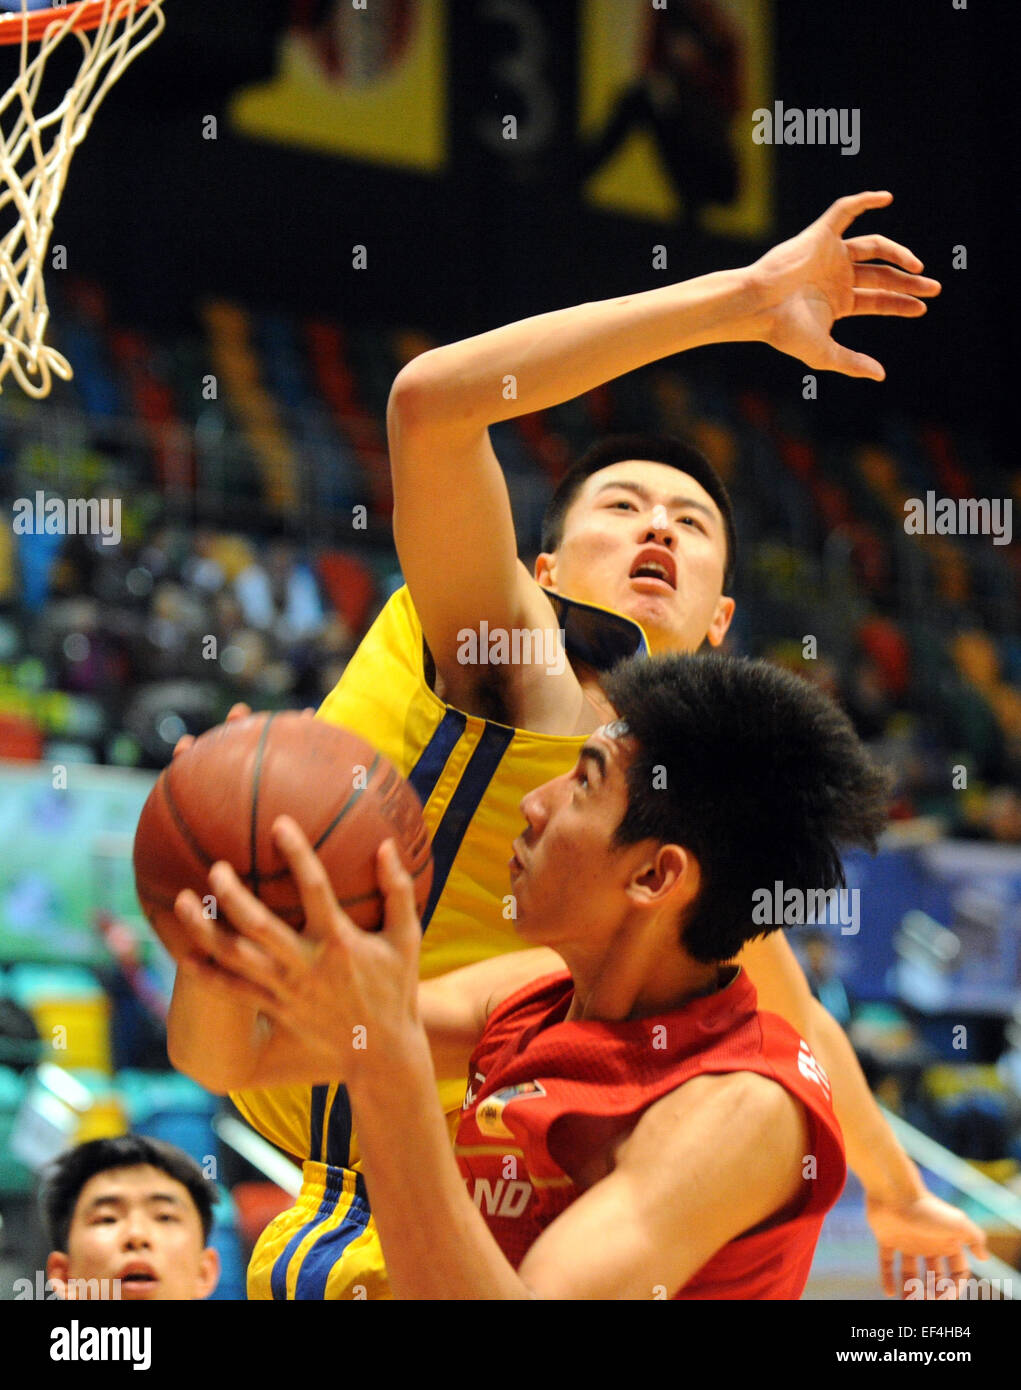 Hong Kong, China. 27th Jan, 2015. Chanatip Jakrawan (front) of Thailand makes a shot during the Super Kung Sheung Stock Photo